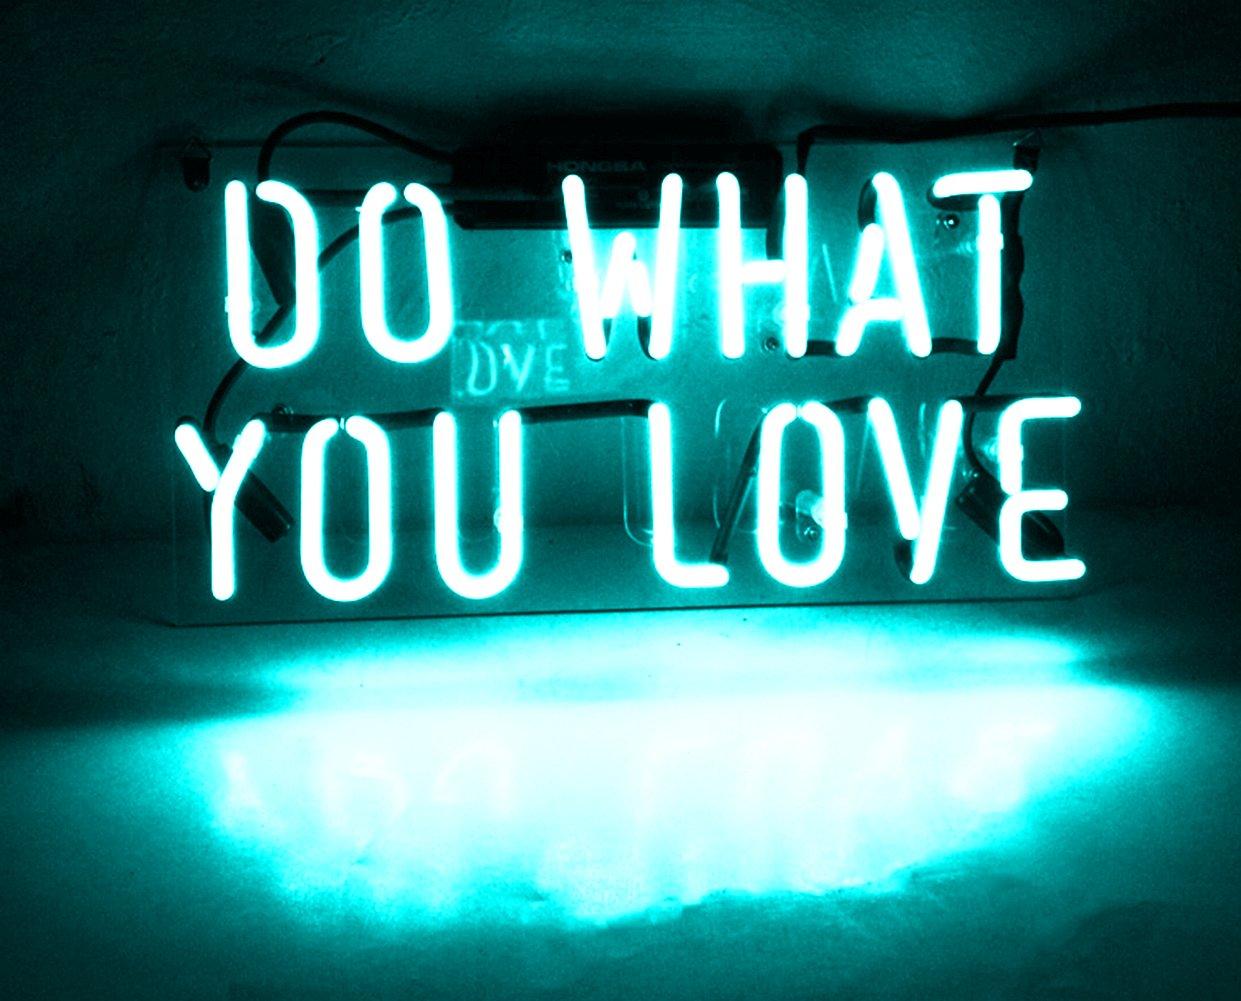 Night Light lamp Decor Neon Light Sign Beer Bar Custom Home Lighting Decorations - Perfect for Bedroom, Living Room, Hallway, Stairways, Office, Garage, Windows - DO WHAT YOU LOVE